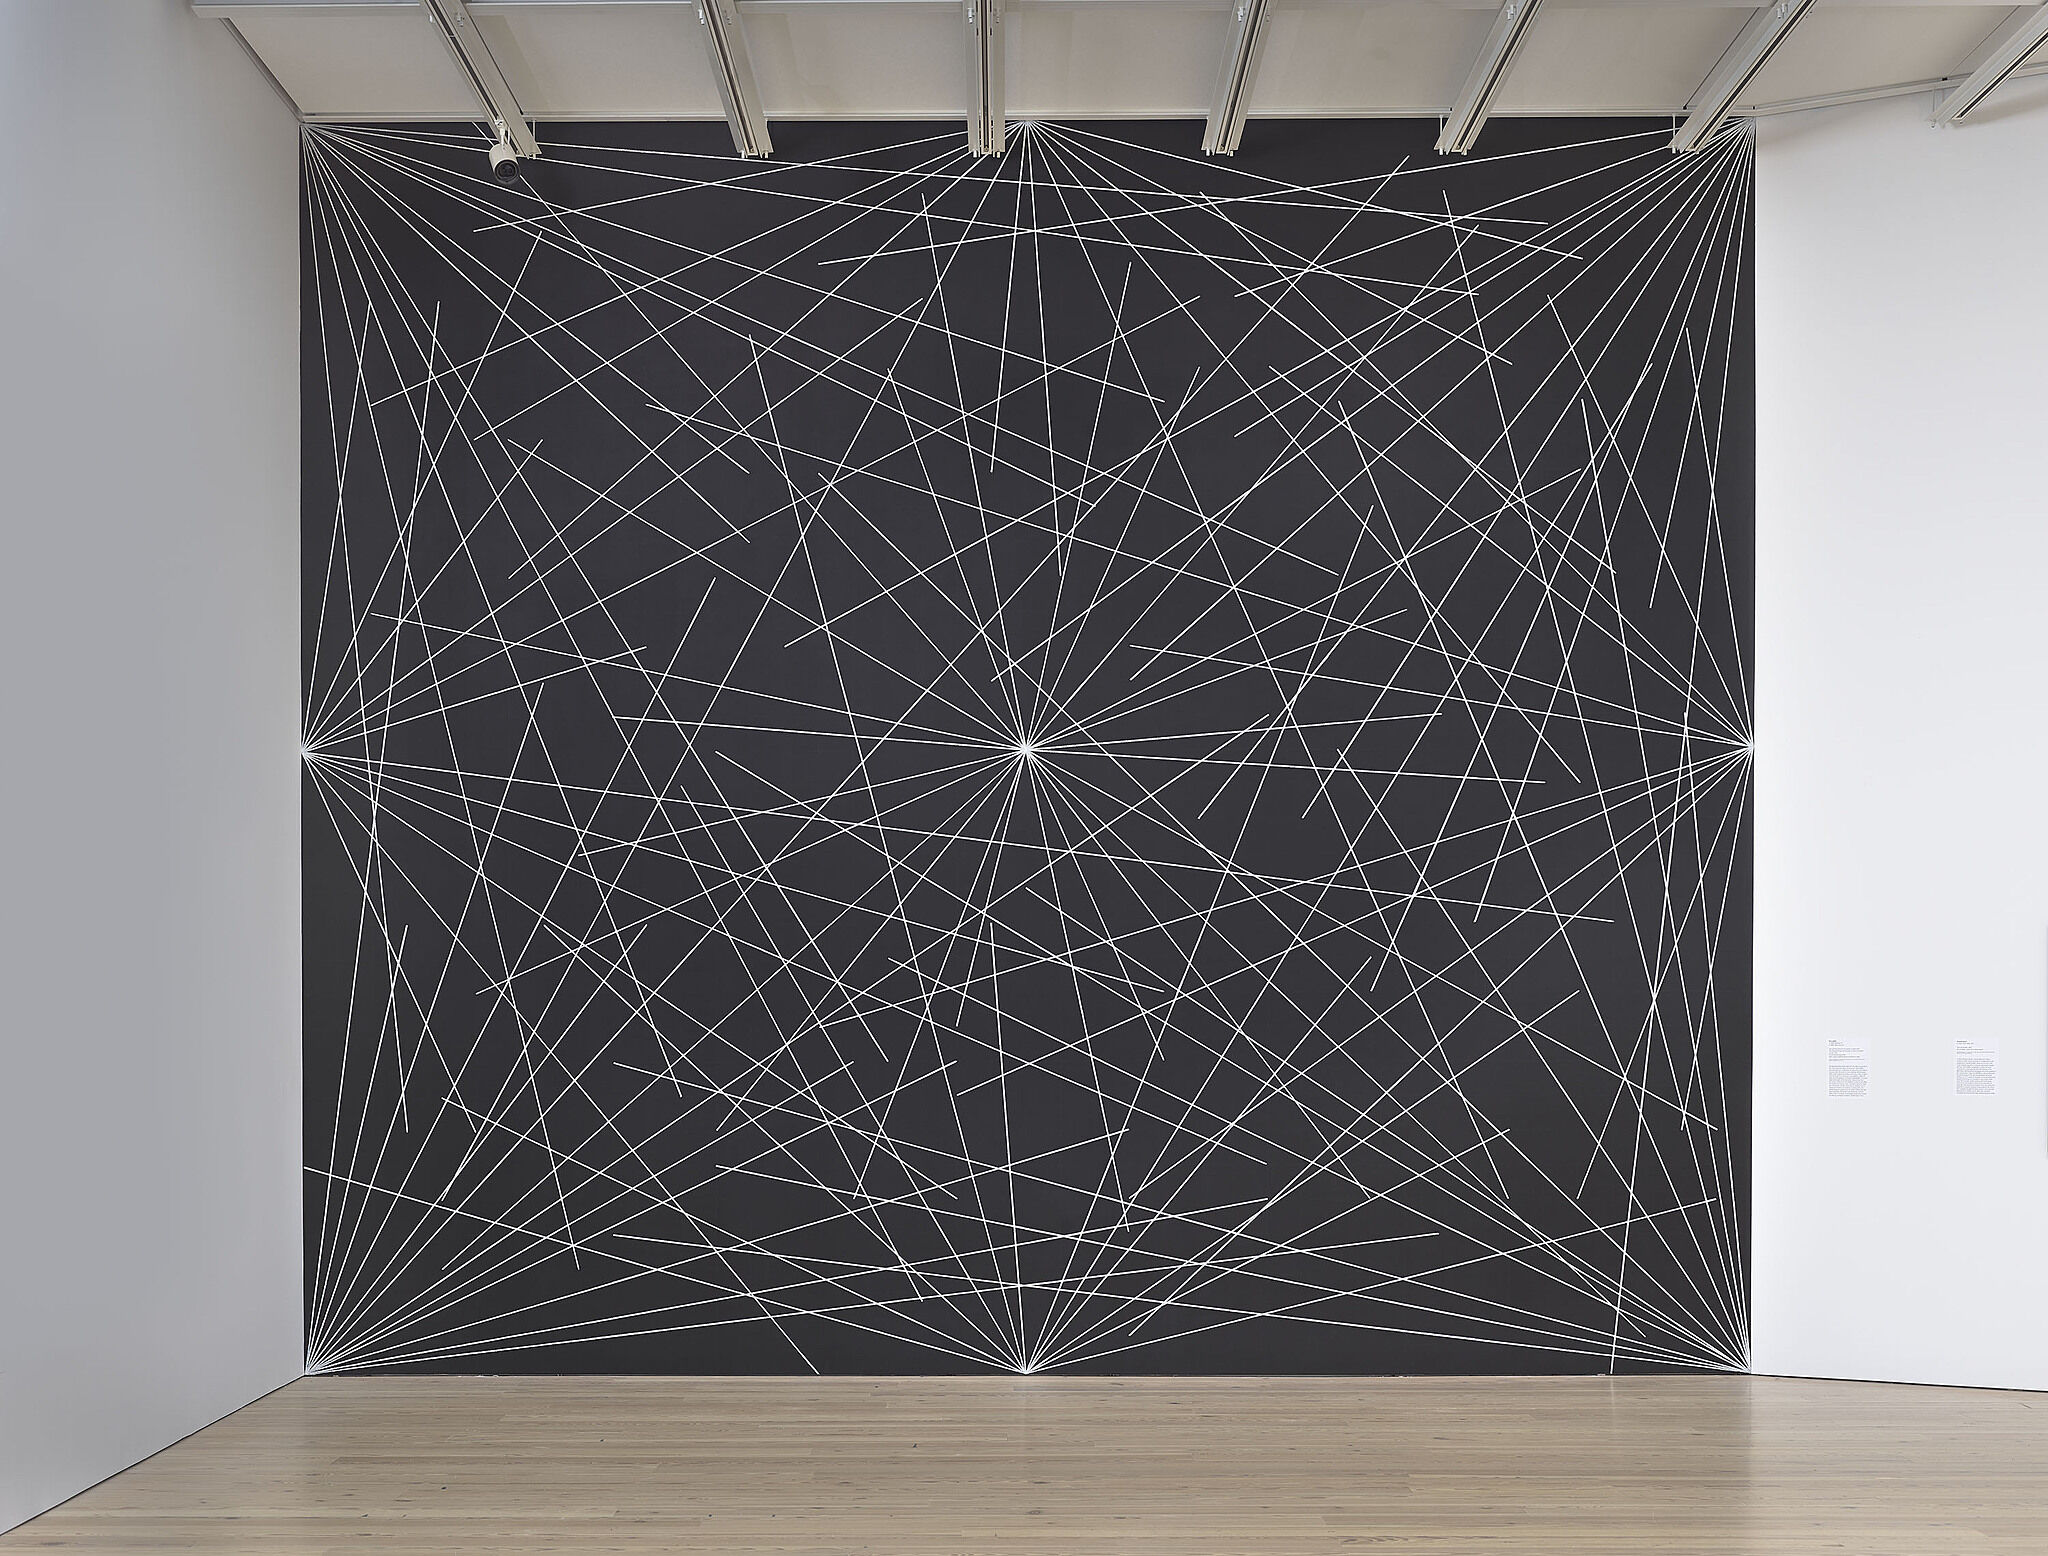 A black wall with white drawn lines.